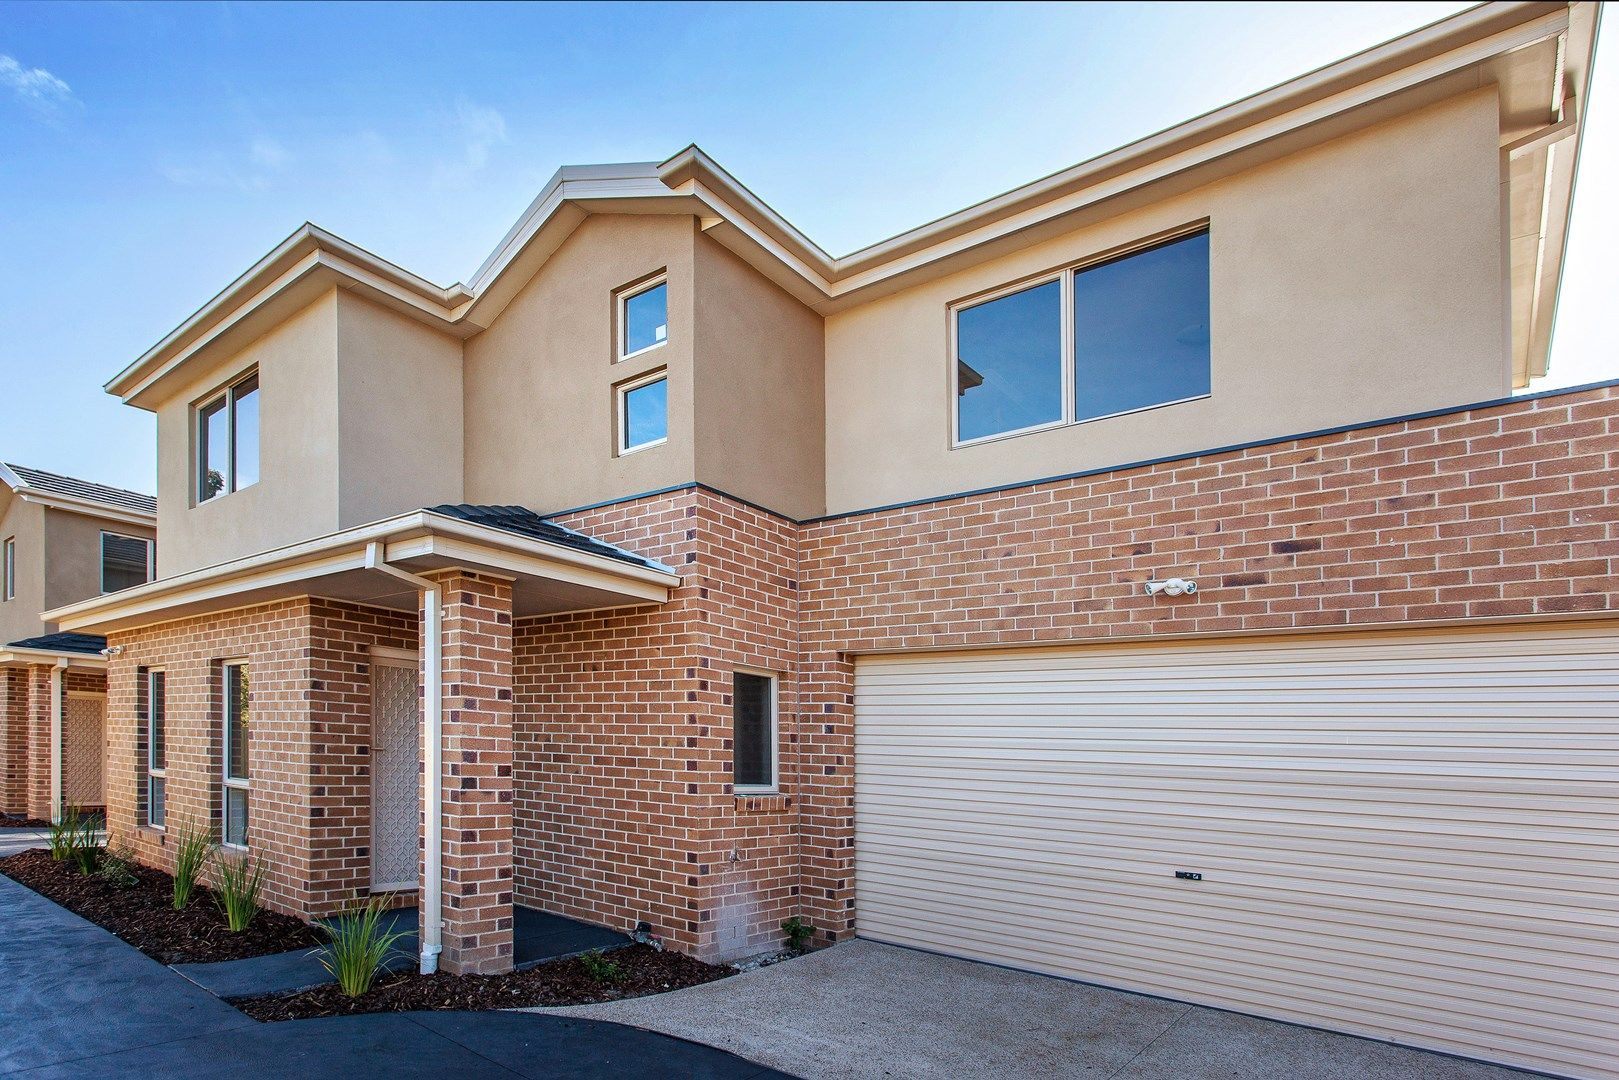 2/8 Leman Crescent, Noble Park VIC 3174, Image 0